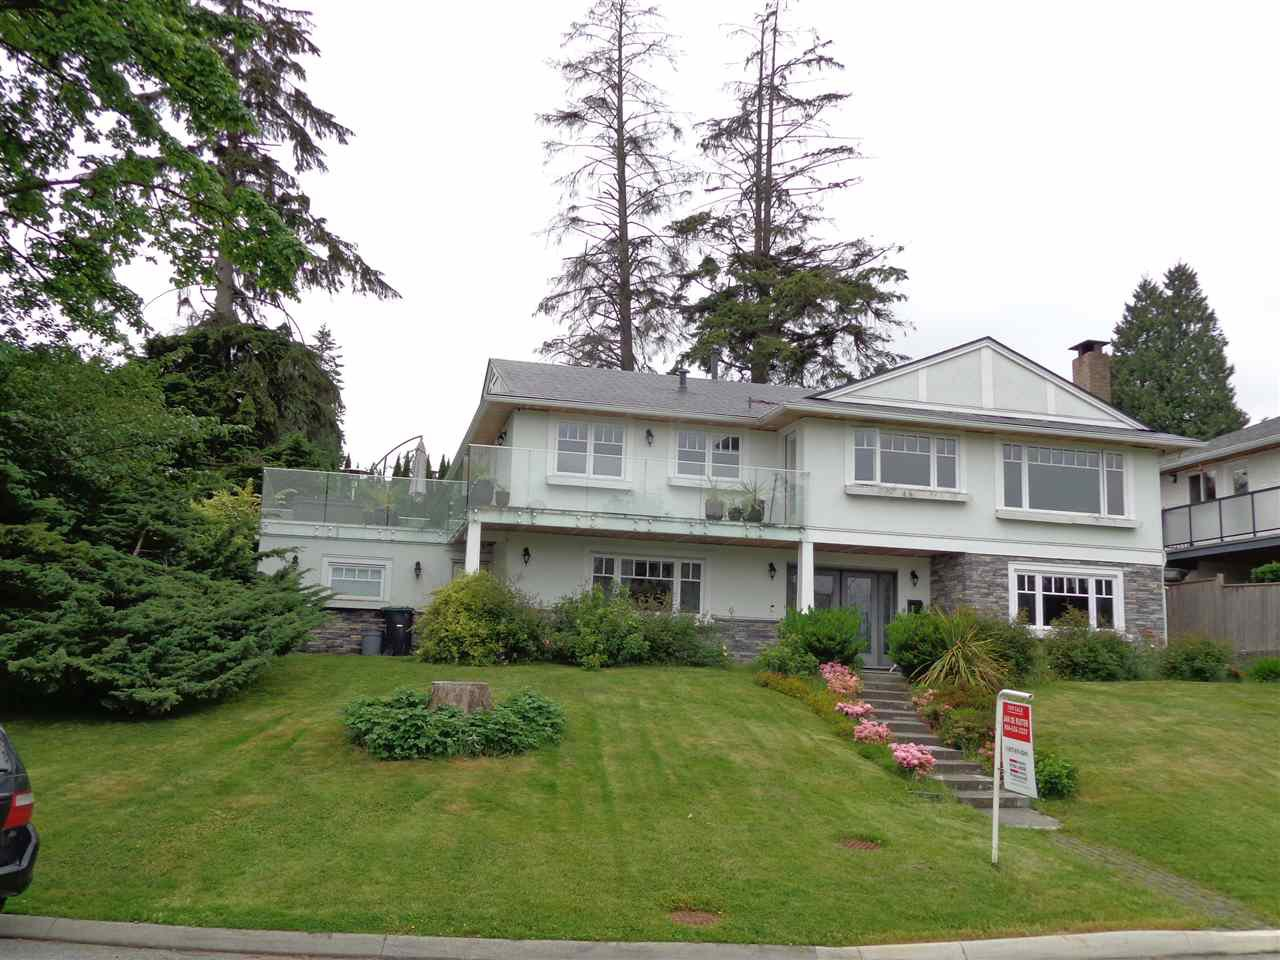 Main Photo: 4210 GLENHAVEN CRESCENT in North Vancouver: Dollarton House for sale : MLS®# R2373969